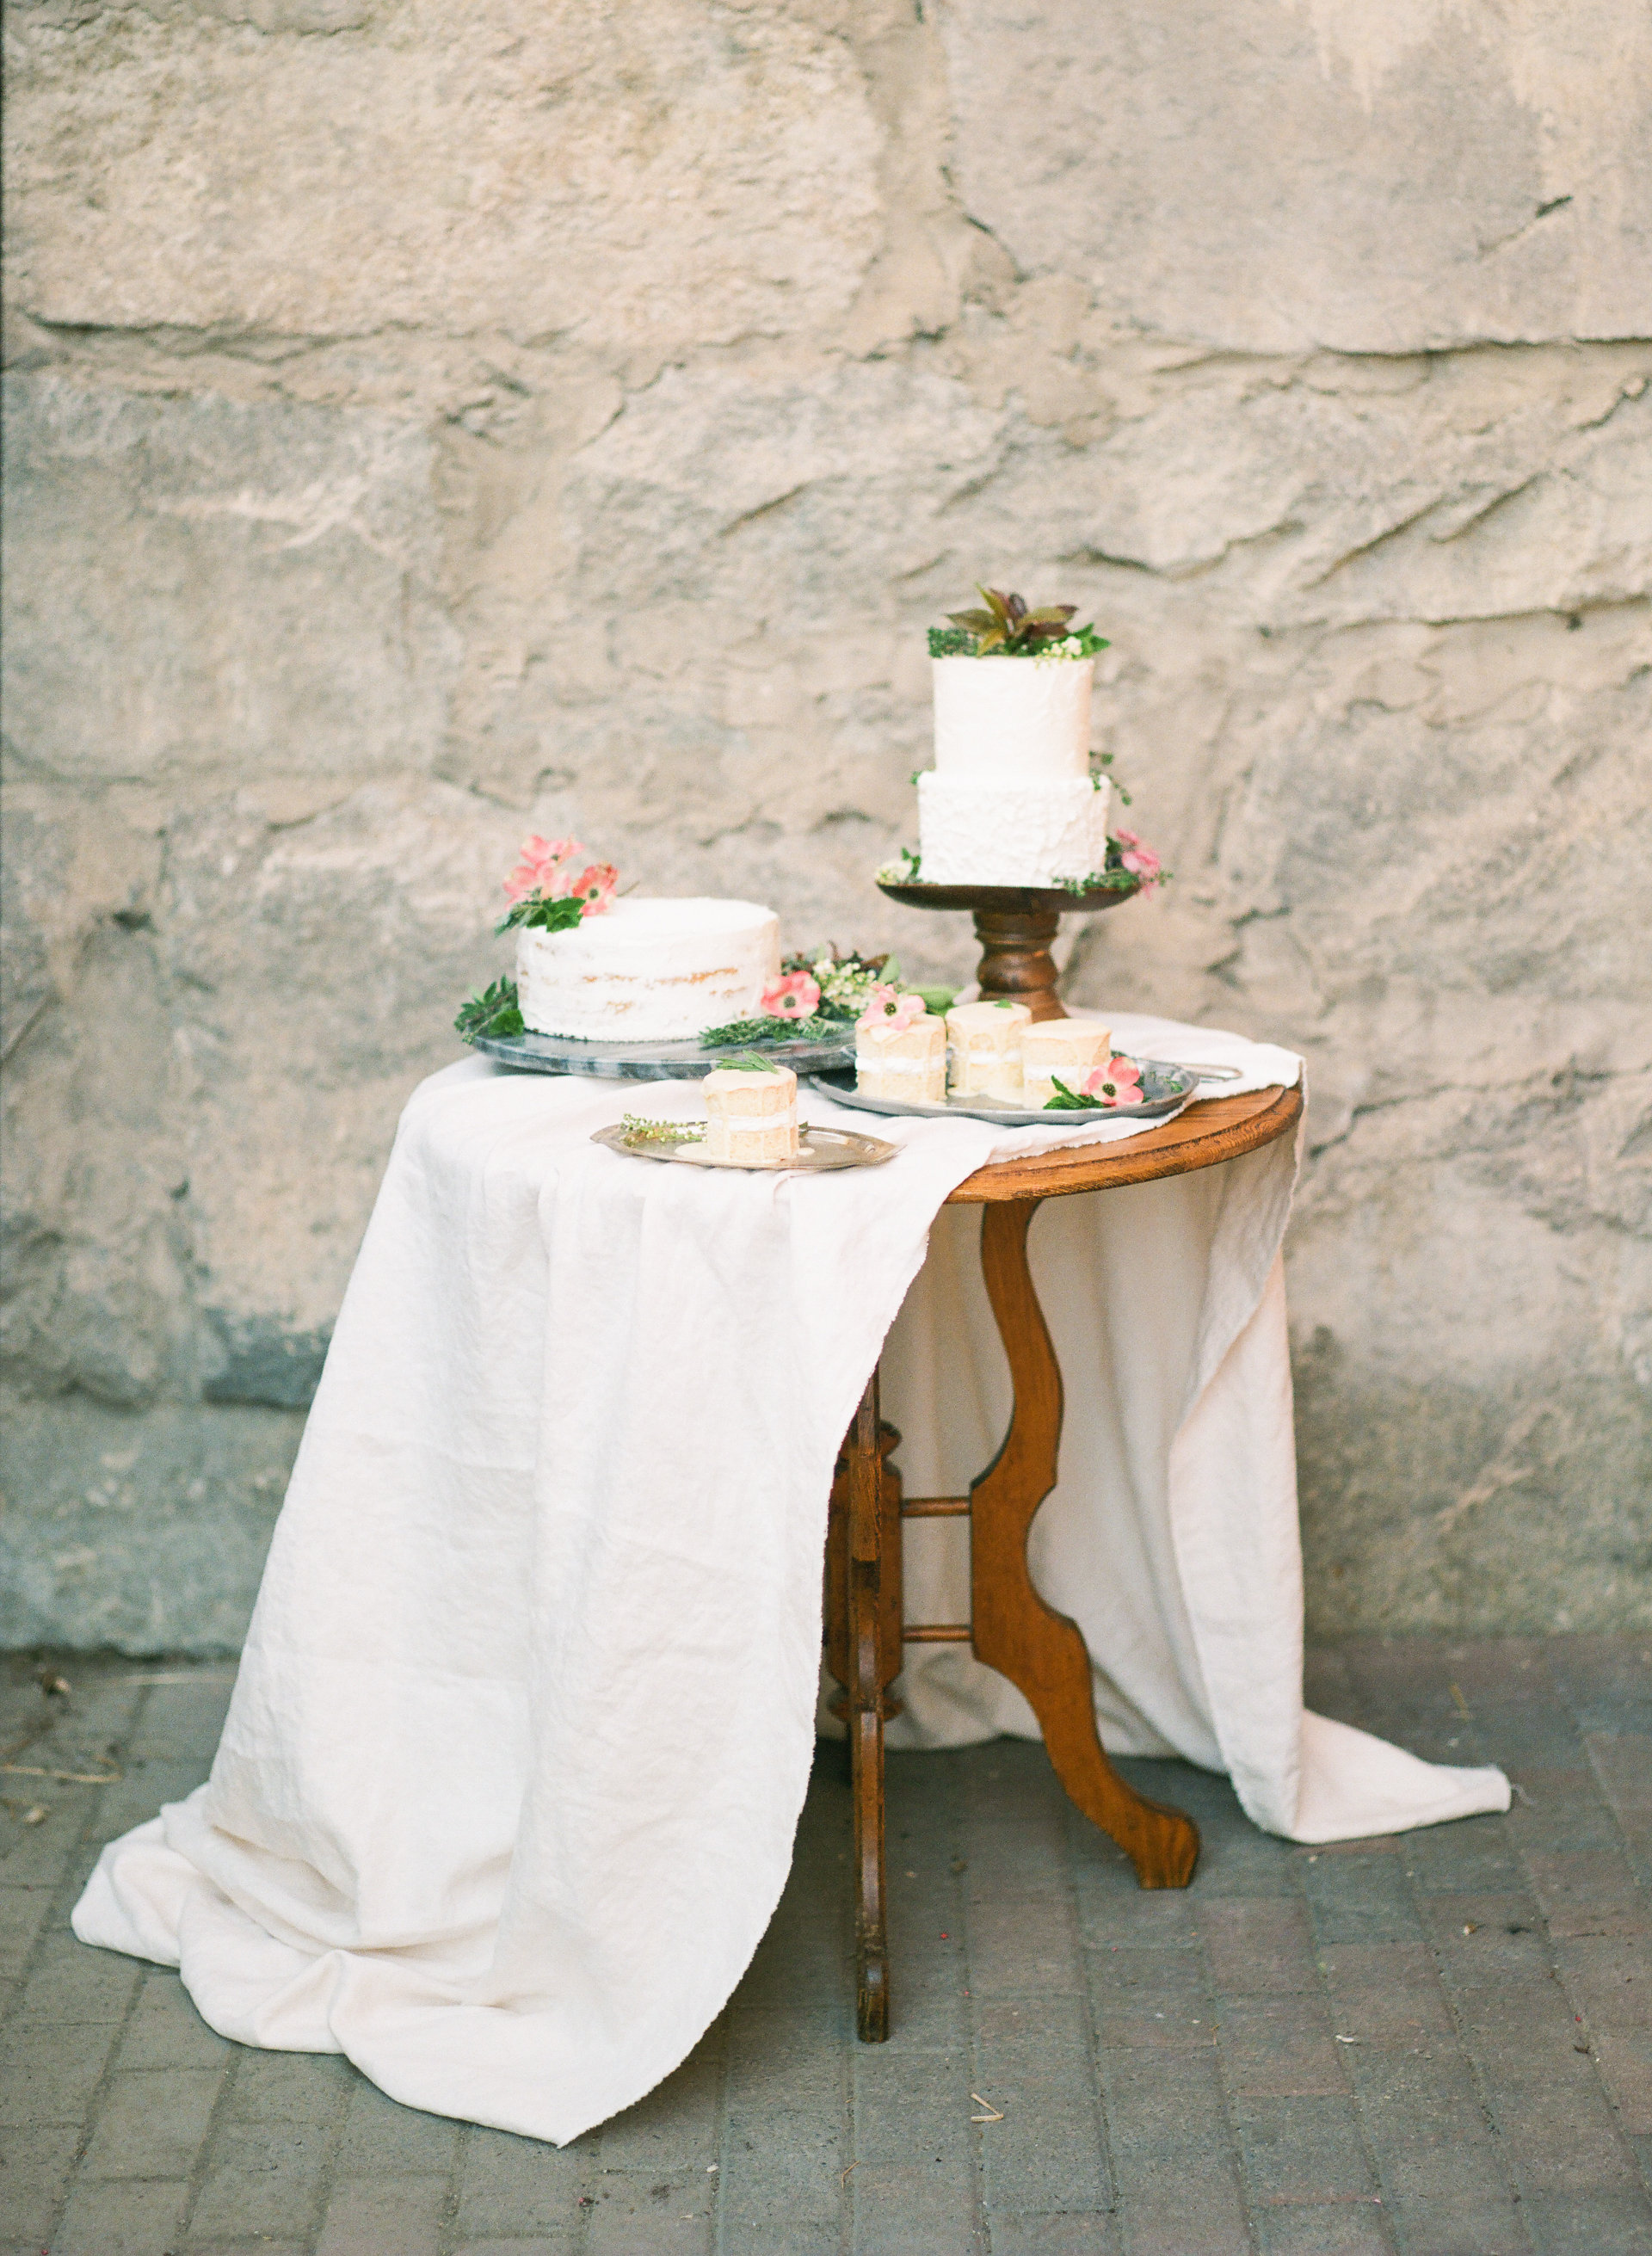 PHOTO BY URBAN ROSE PHOTOGRAPHY // STYLING BY DANA MUCHOW DESIGN